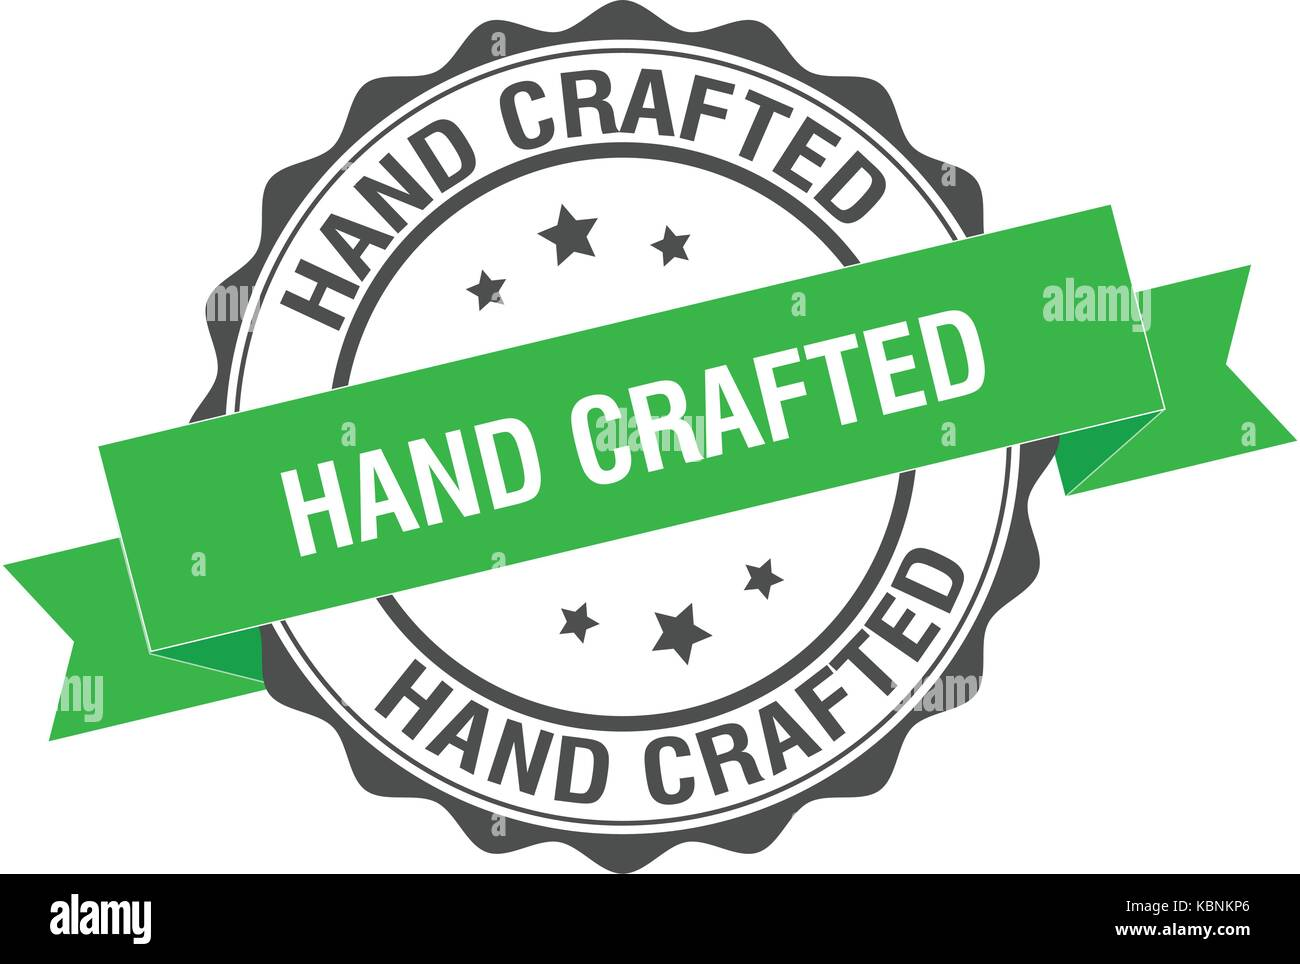 Hand crafted stamp illustration - Stock Image